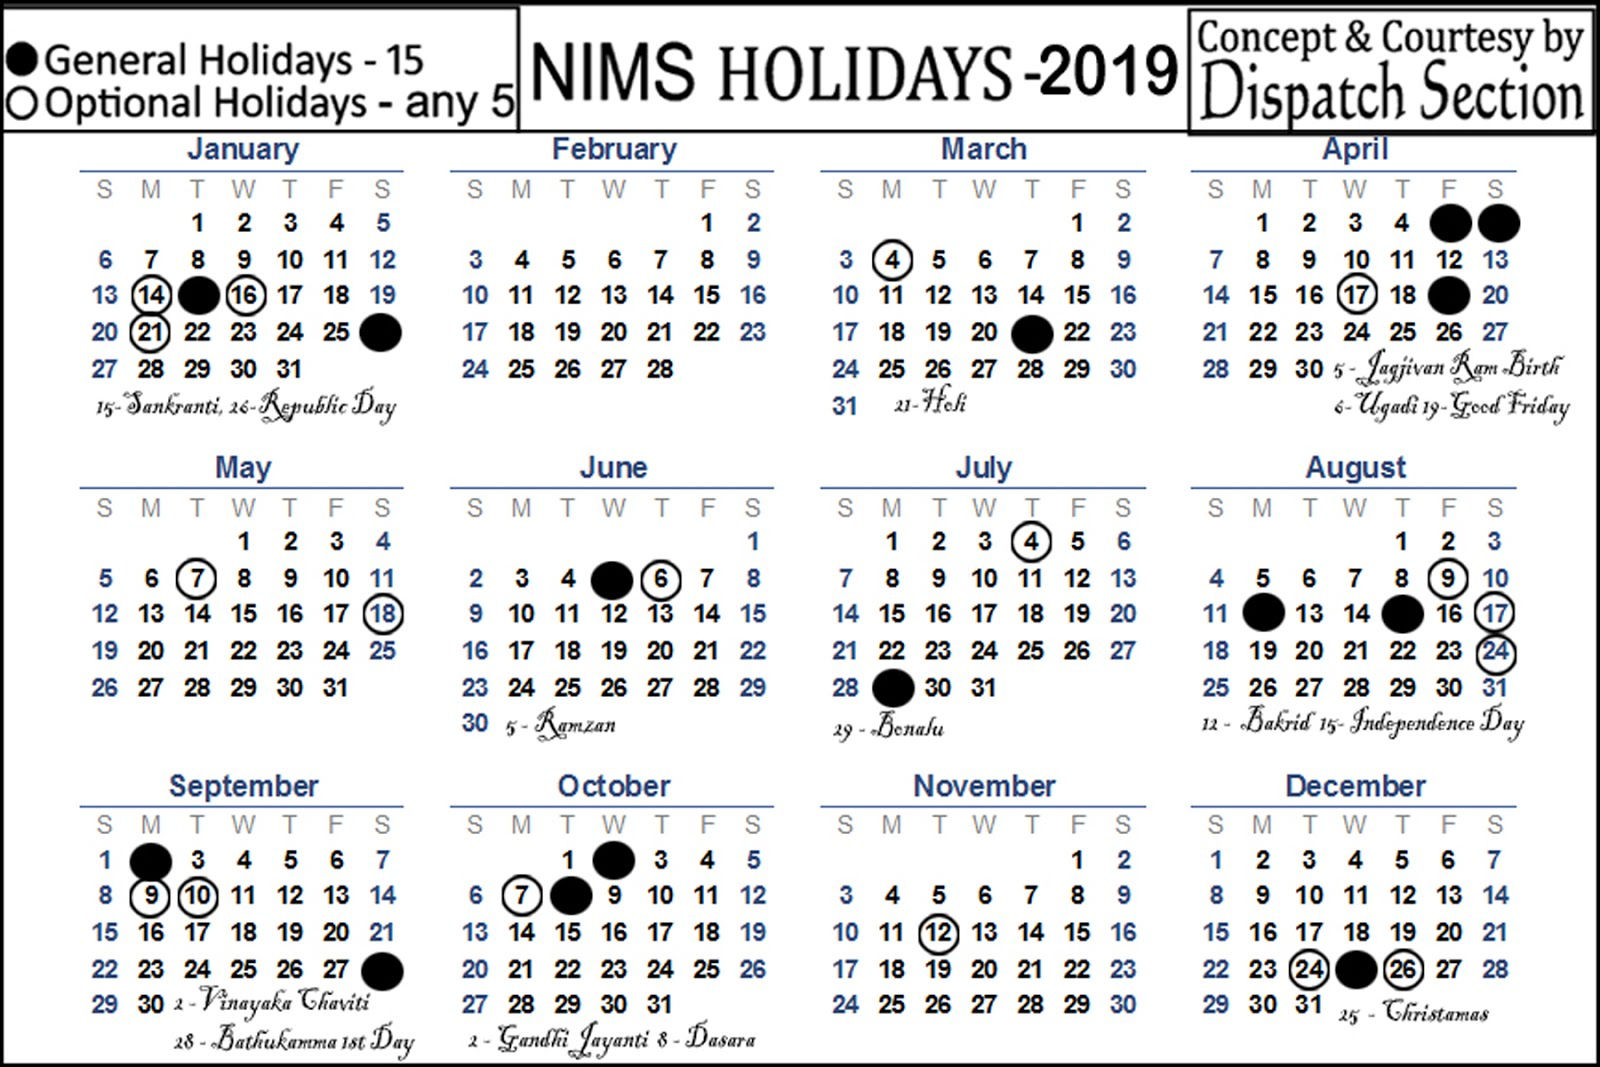 NIMS Holidays List 2019 ..Click on to Enlarge